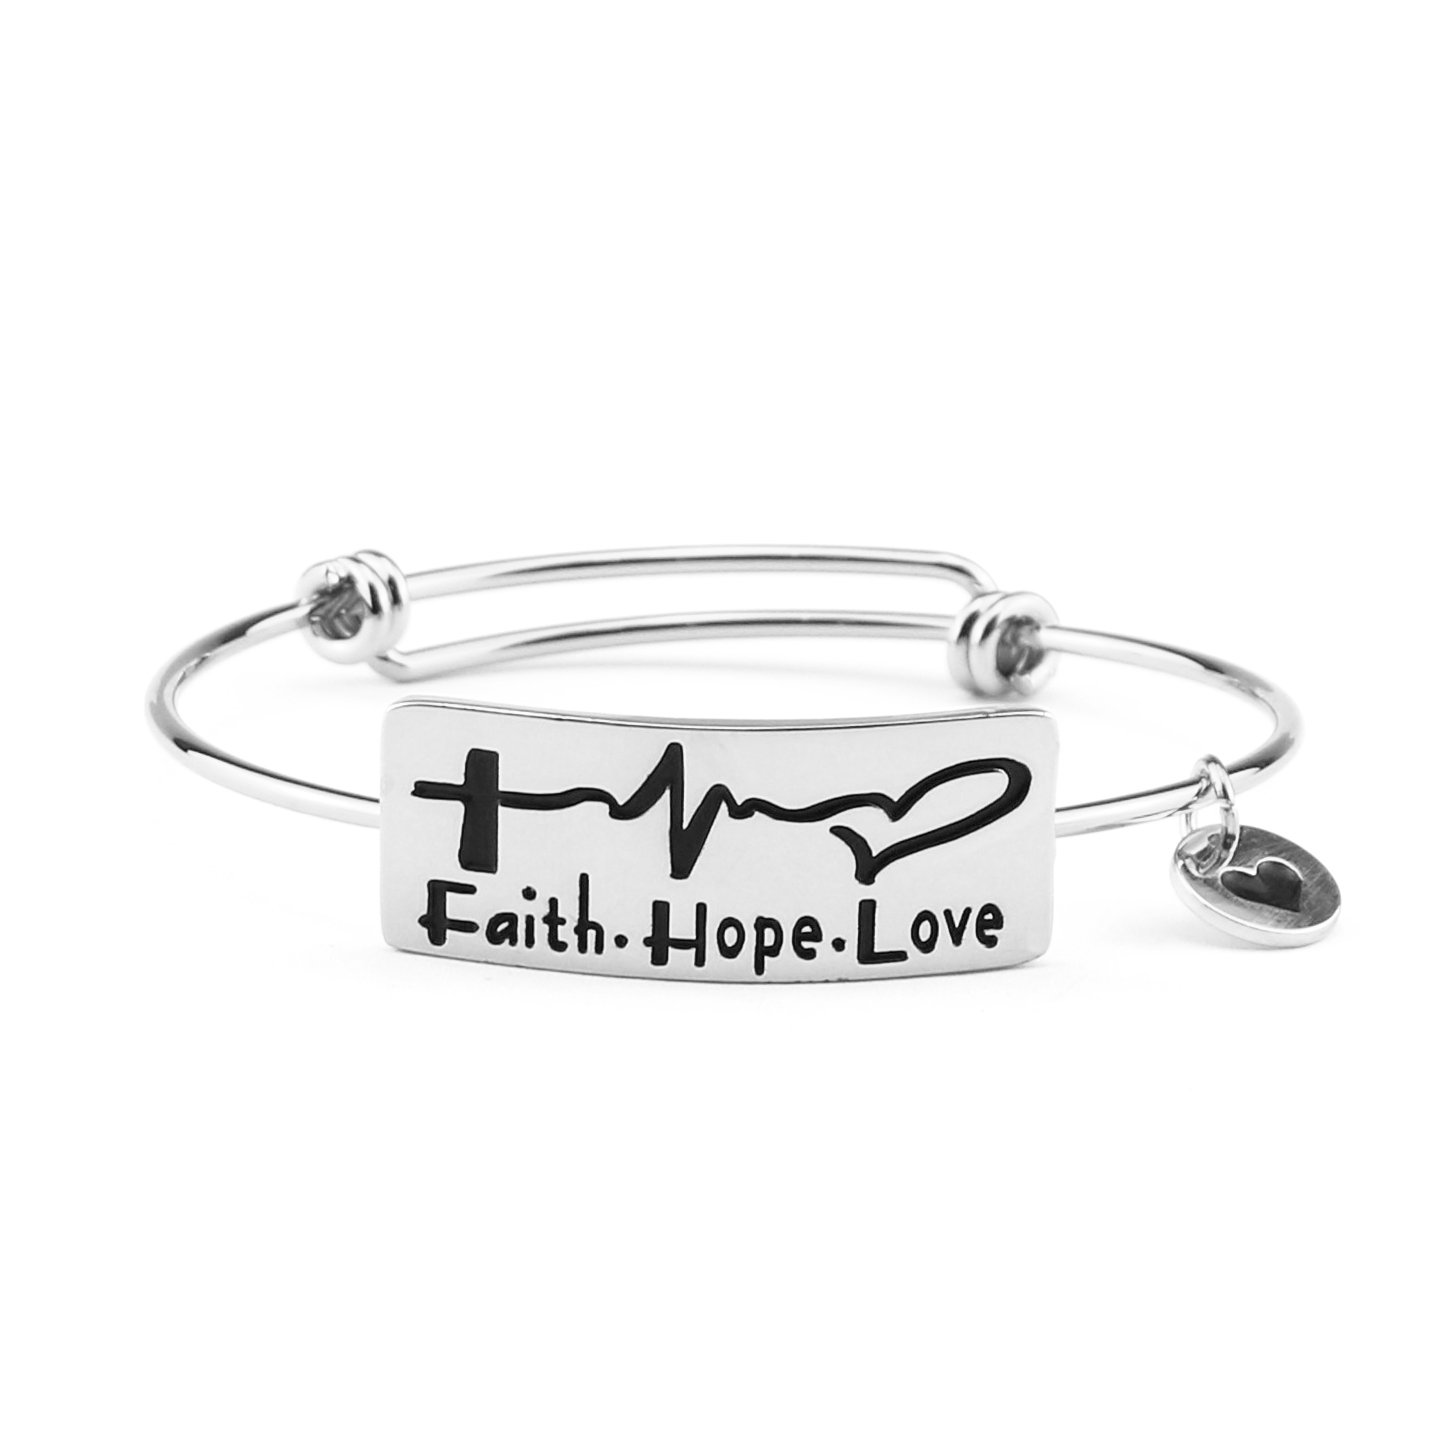 Yiyangjewelry Expandable Bangle Bracelet Personalized Engraved Inspirational Quotes Christimas Gifts for Female Electrocardiogram Faith Hope Love Adjustable Wire Plate Encouragement